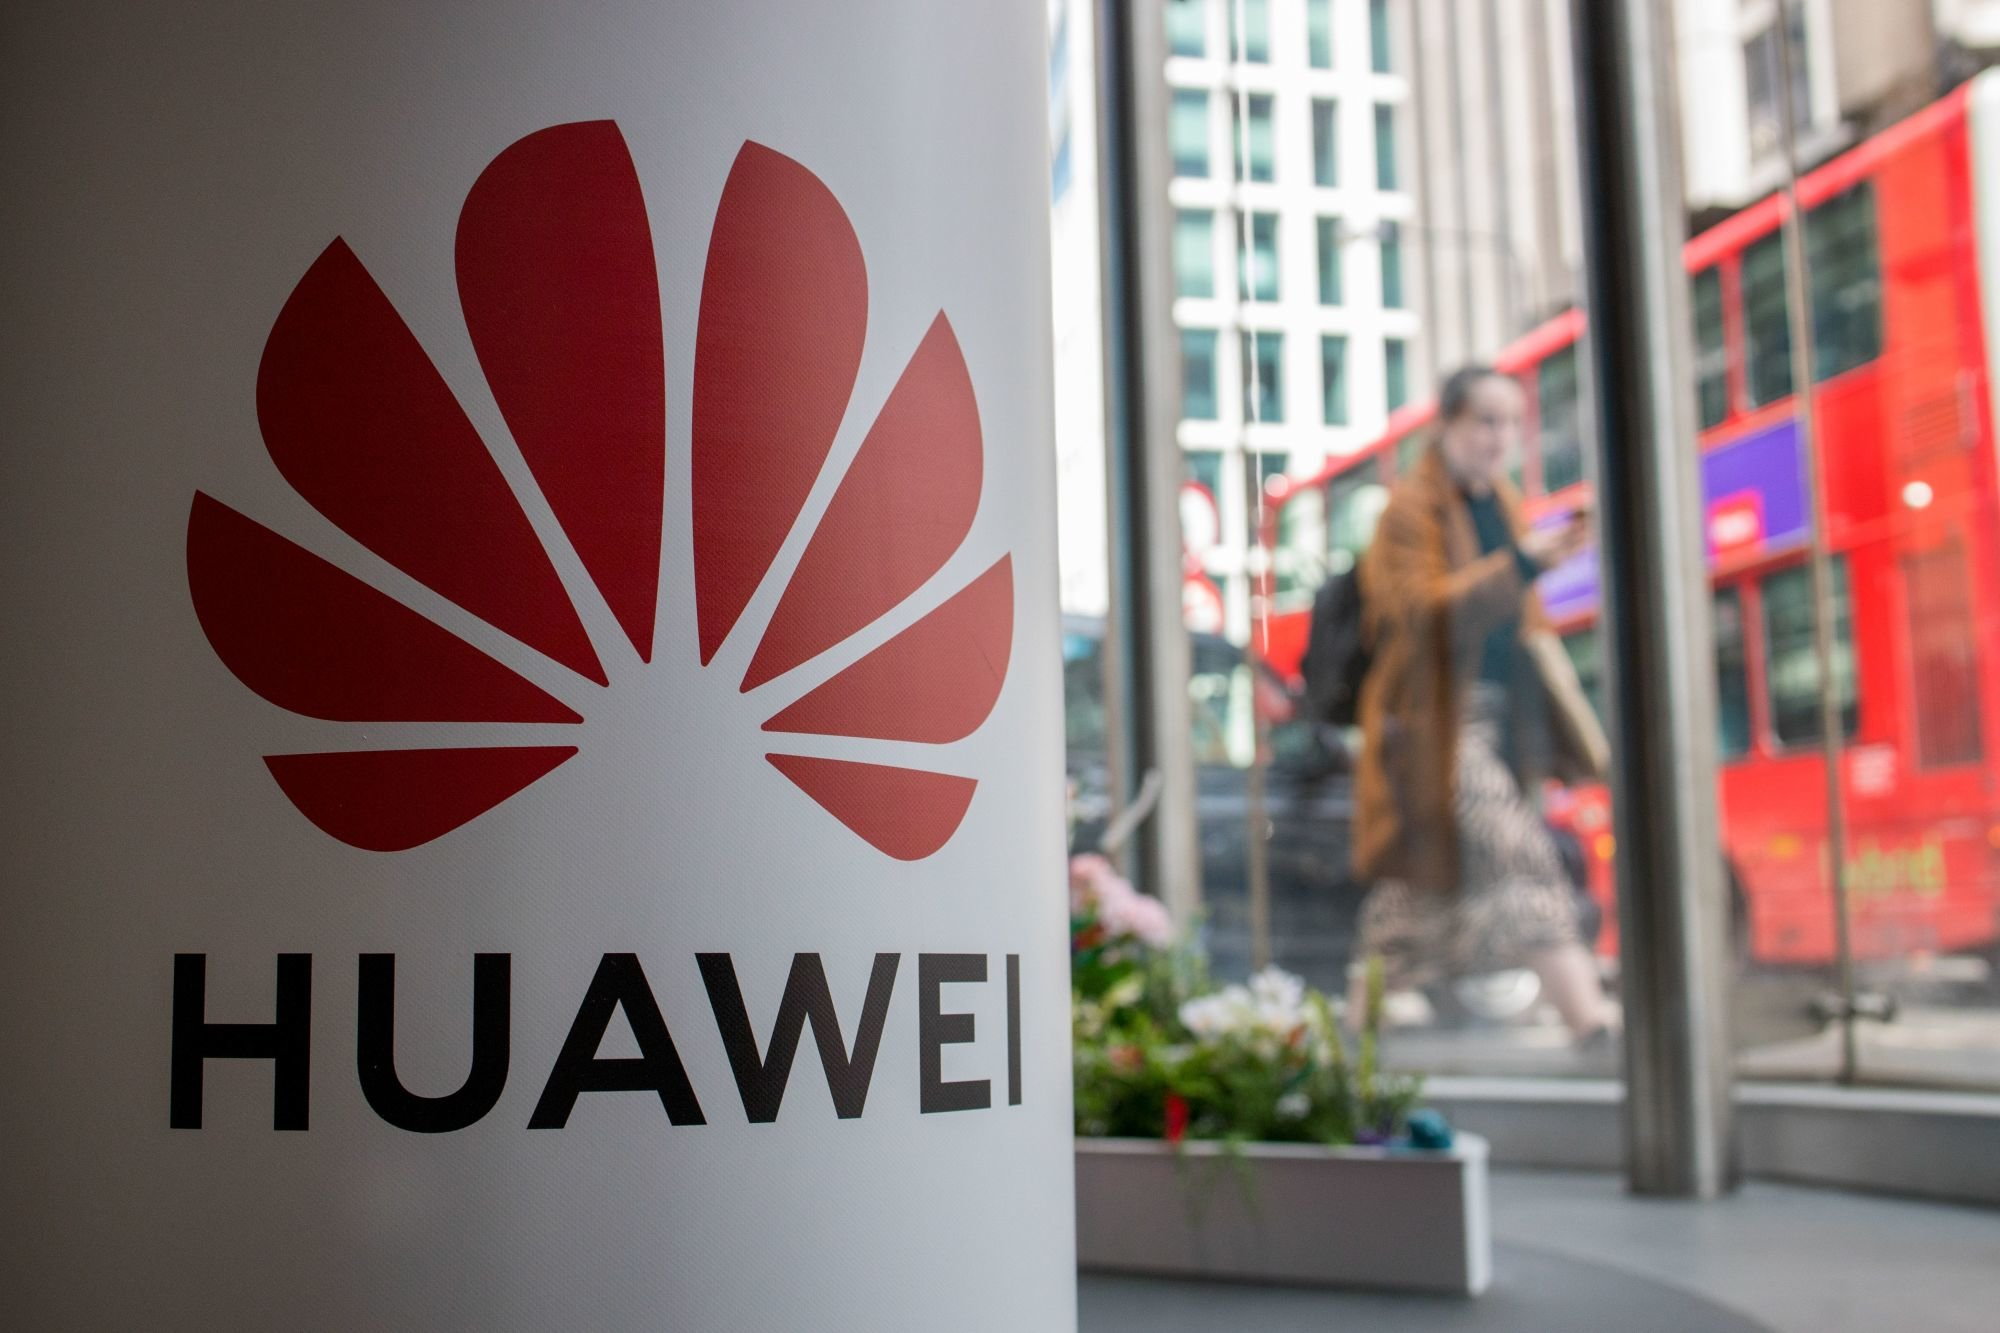 A pedestrian walks past a Huawei product stand at an EE telecommunications shop in central London on April 29, 2019. - British Foreign Secretary Jeremy Hunt has urged caution over the role of China's Huawei in the UK, saying the government should think carefully before opening its doors to the technology giant to develop next-generation 5G mobile networks. His comments come after Prime Minister Theresa May conditionally allowed China's Huawei to build the UK 5G network, information that was leaked to a newspaper from top secret discussions between senior ministers and security officials, a leak that has caused a scandal that has rocked Britain's splintered government. (Photo by Tolga Akmen / various sources / AFP)        (Photo credit should read TOLGA AKMEN/AFP/Getty Images)